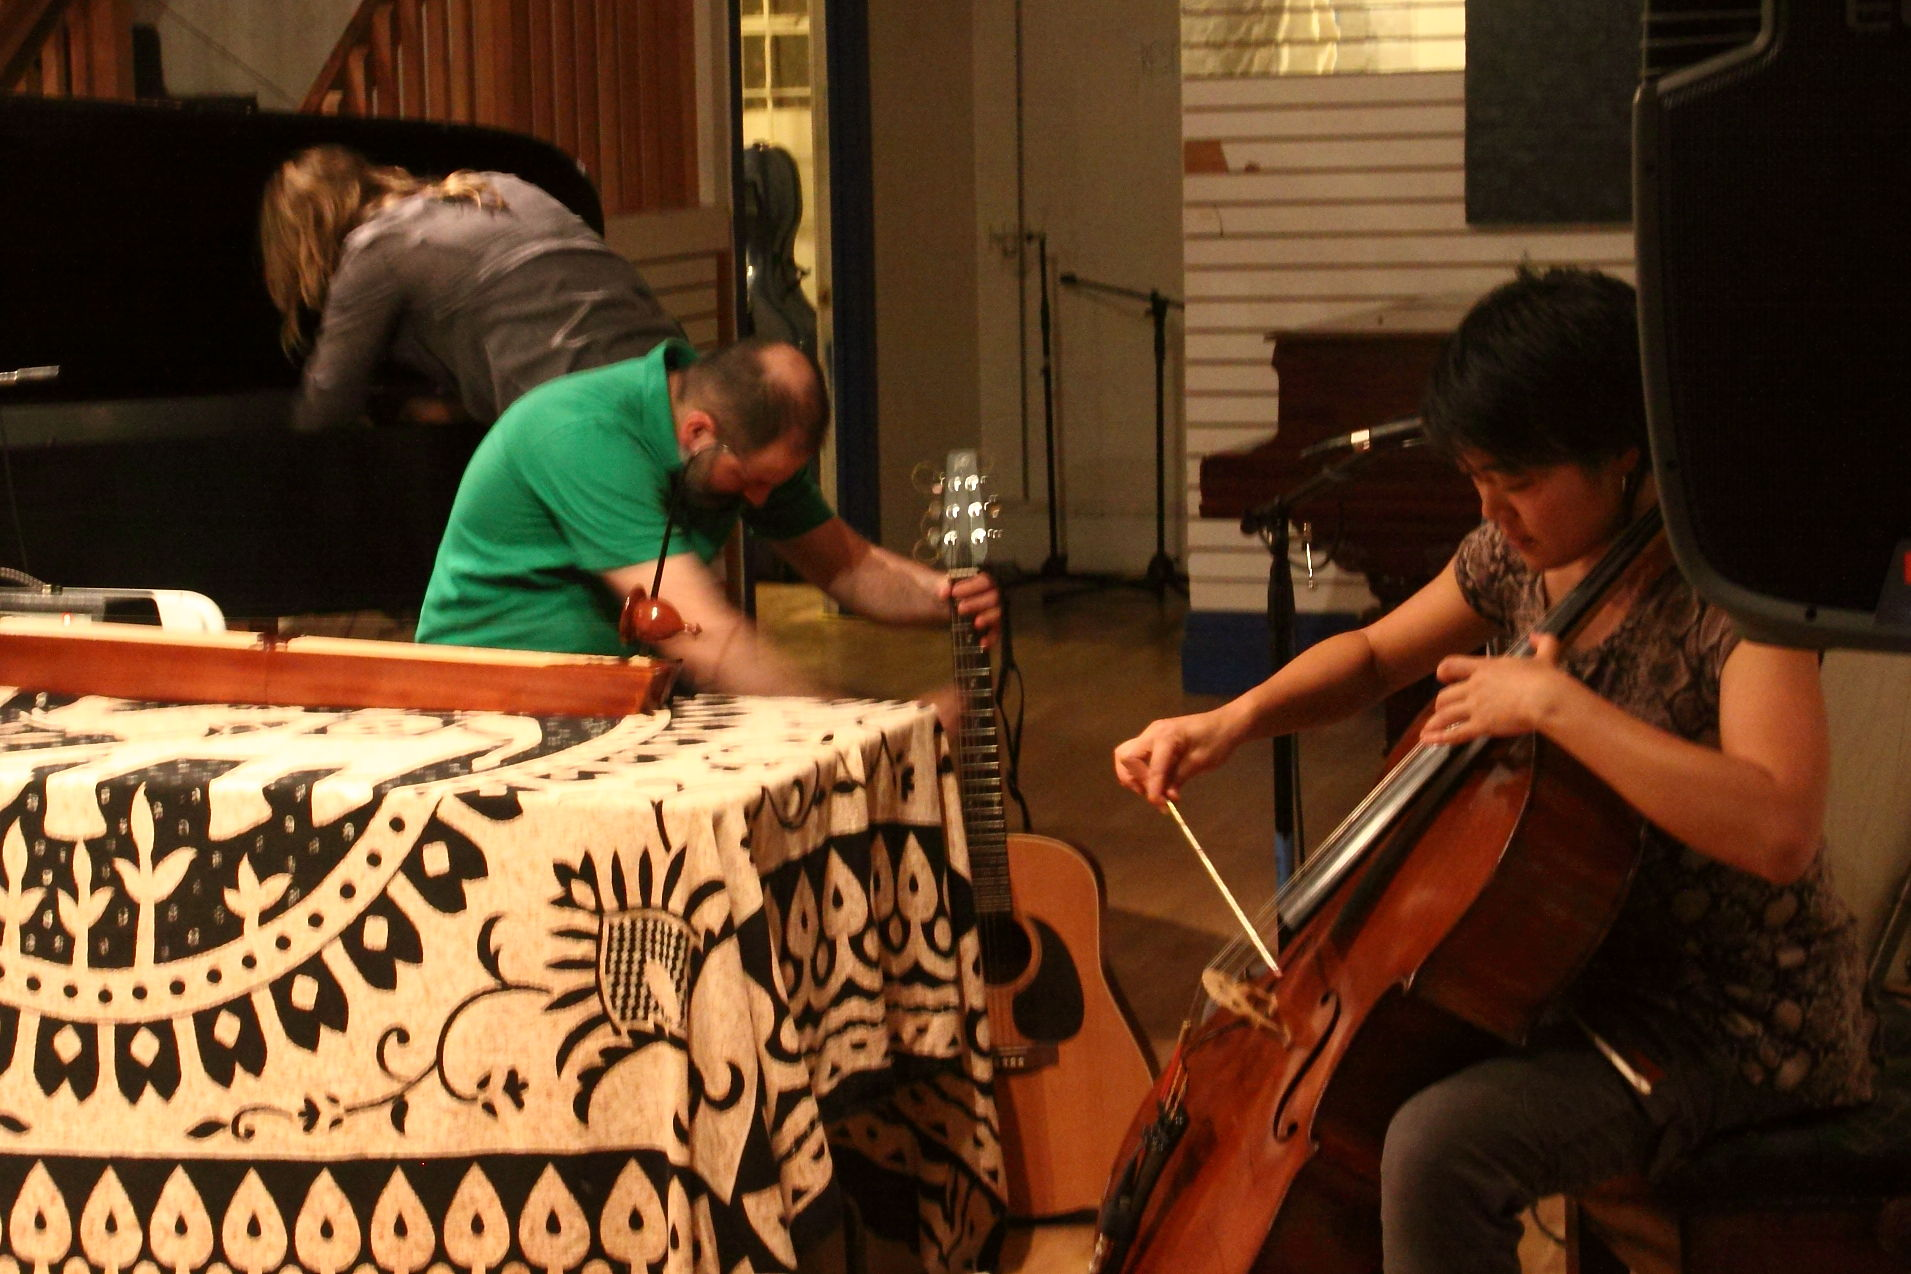 Annie Lewandoski, Luciano Chessa and Theresa Wong in a trio improvisation